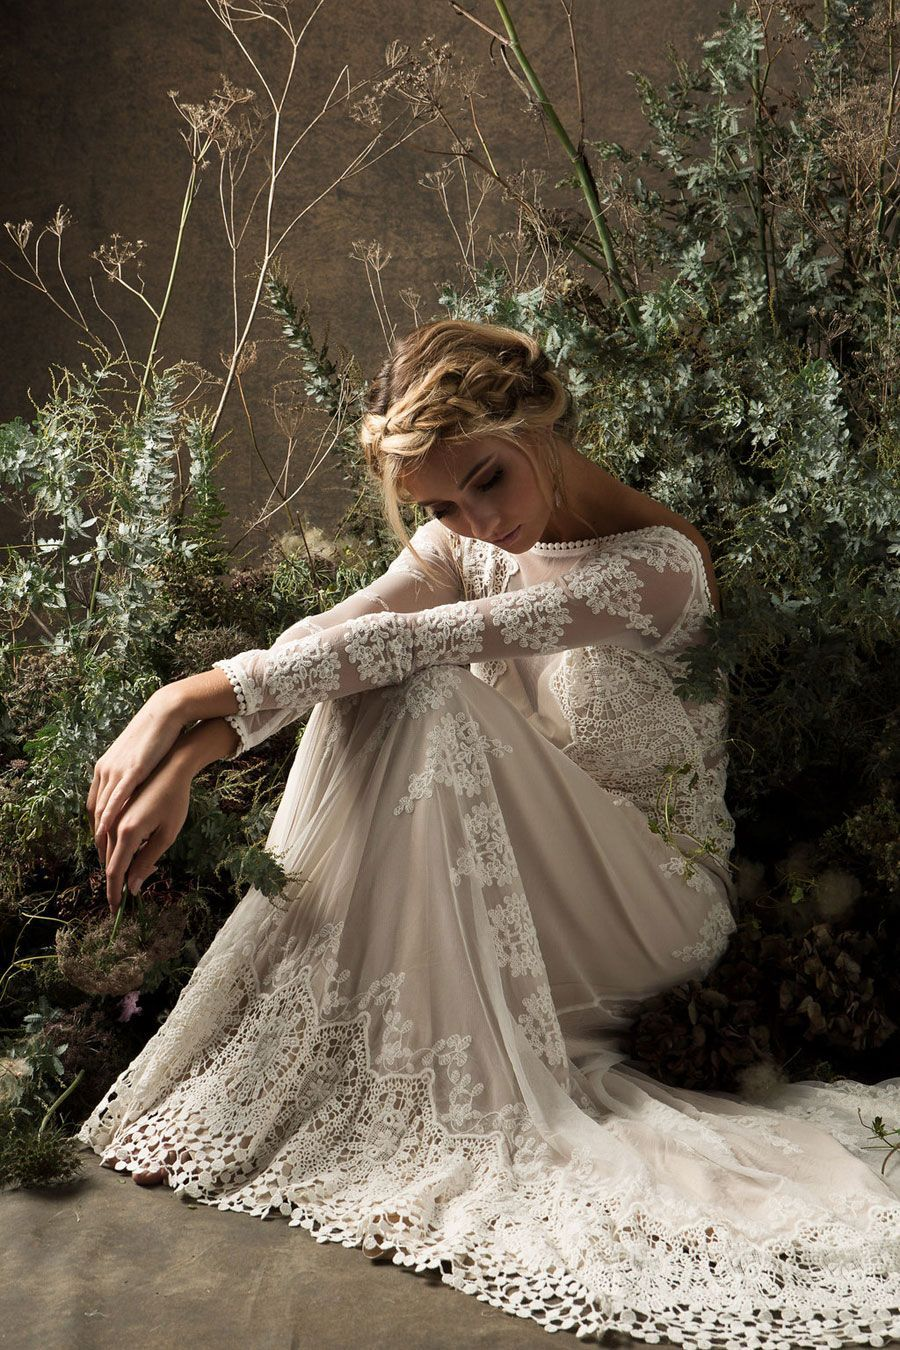 Dianna agron wedding dress  The New uCloud Nineu Collection from Dreamers u Lovers Boho Wedding